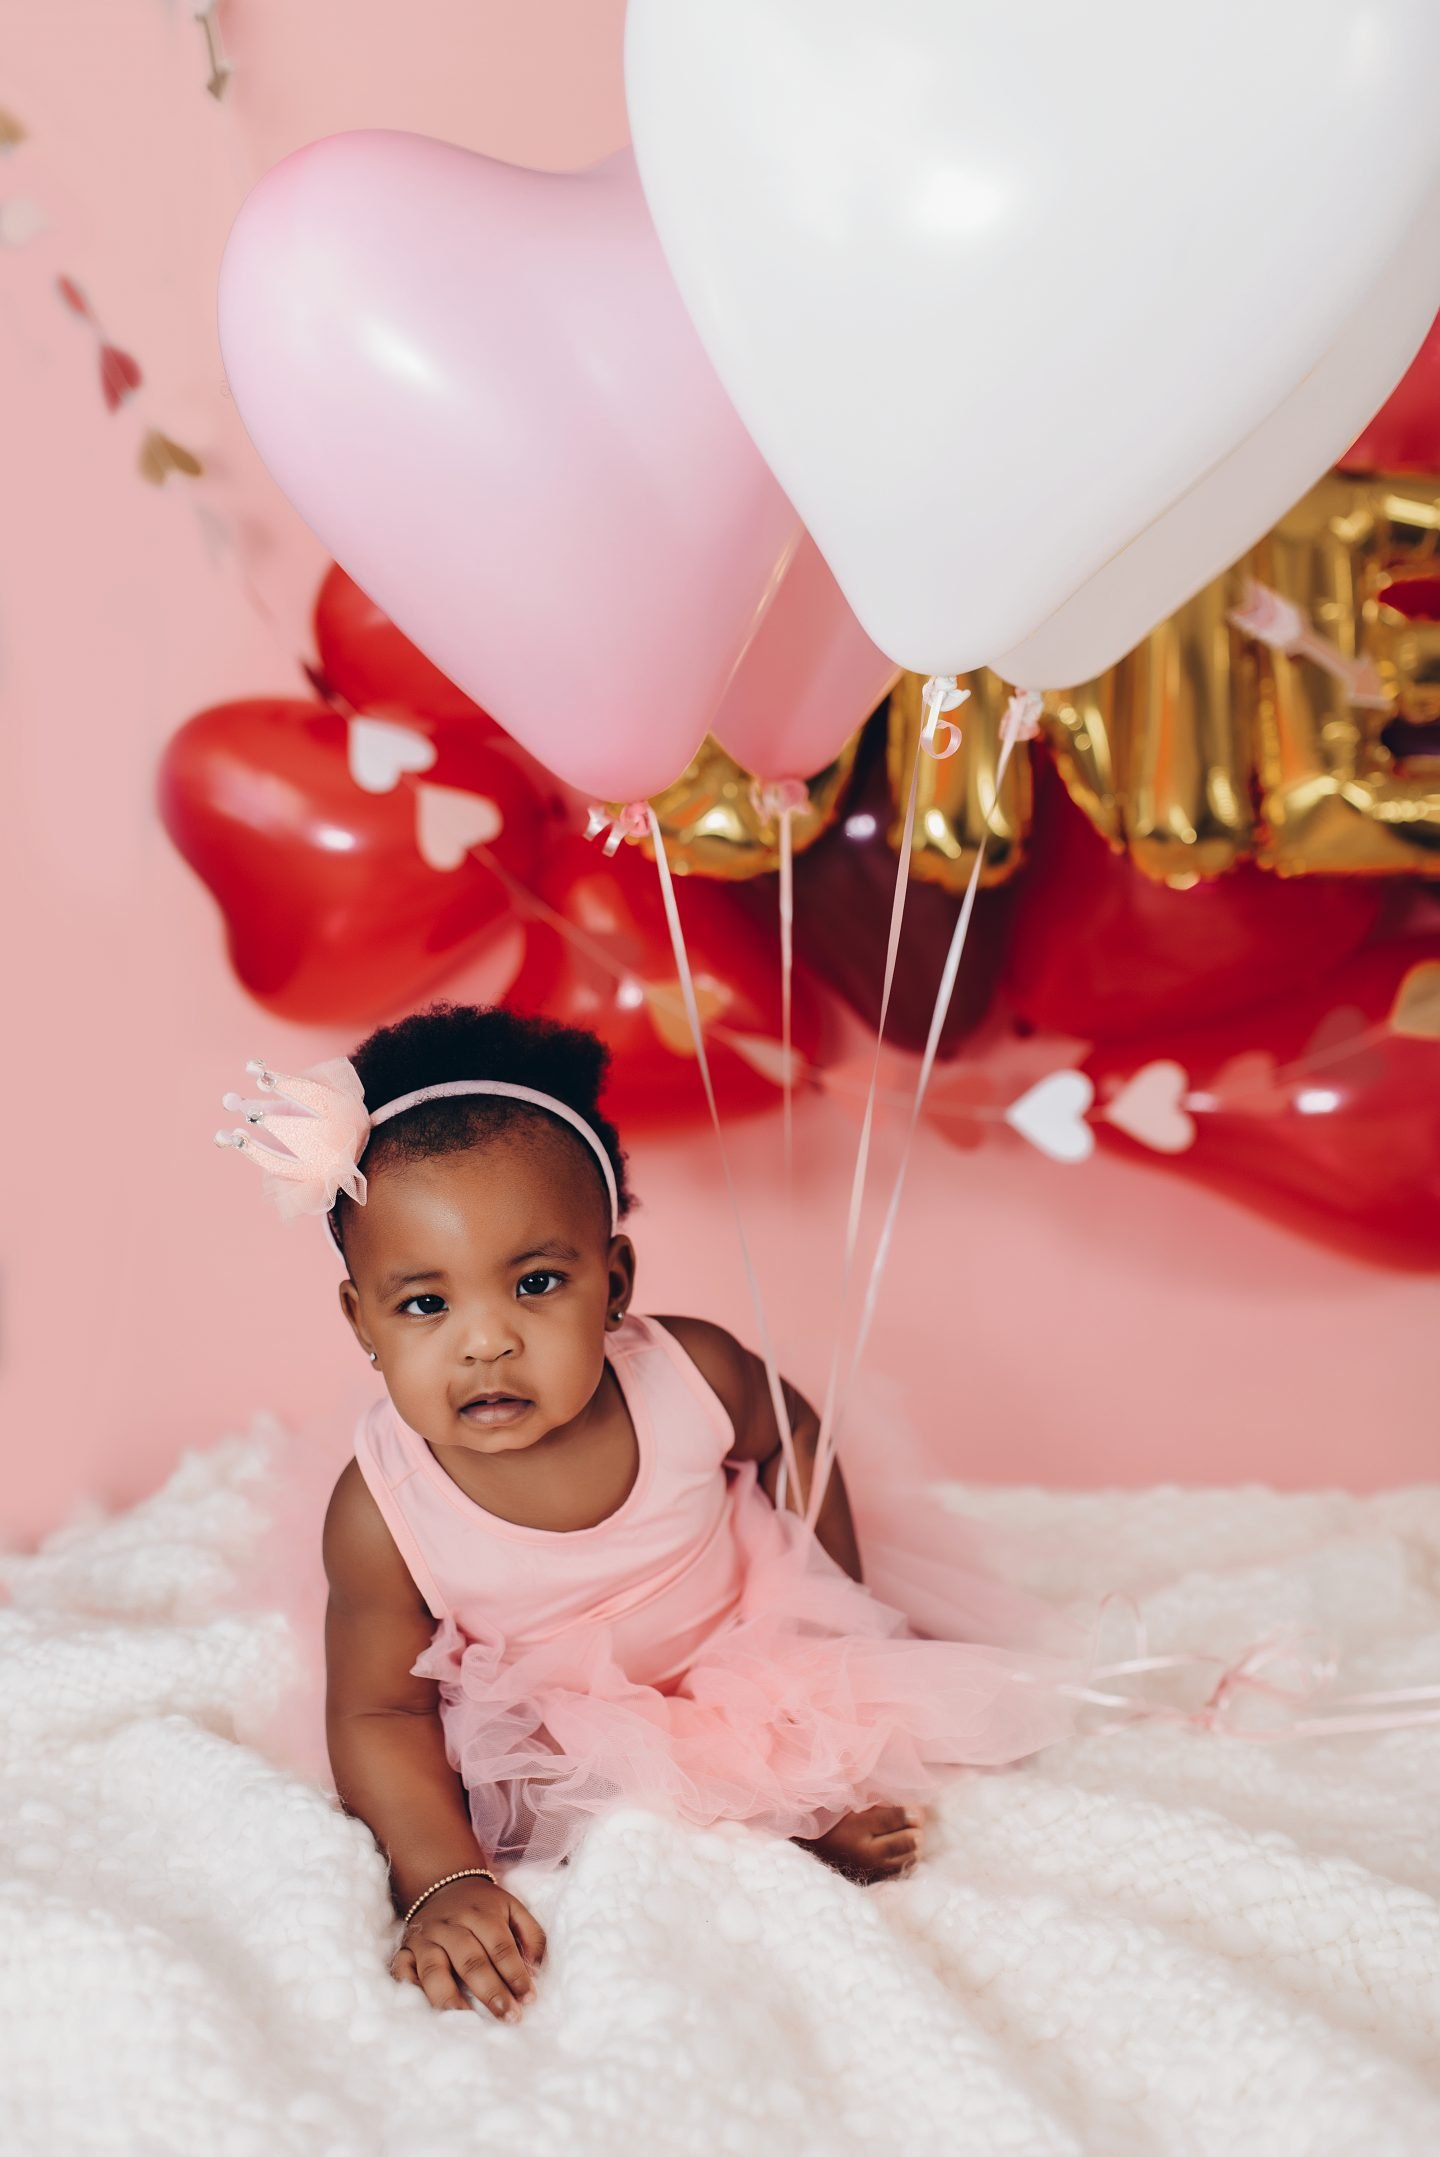 stella-adewunmi-of-jadore-fashion-shares-novas-valentine-birthday-tutu